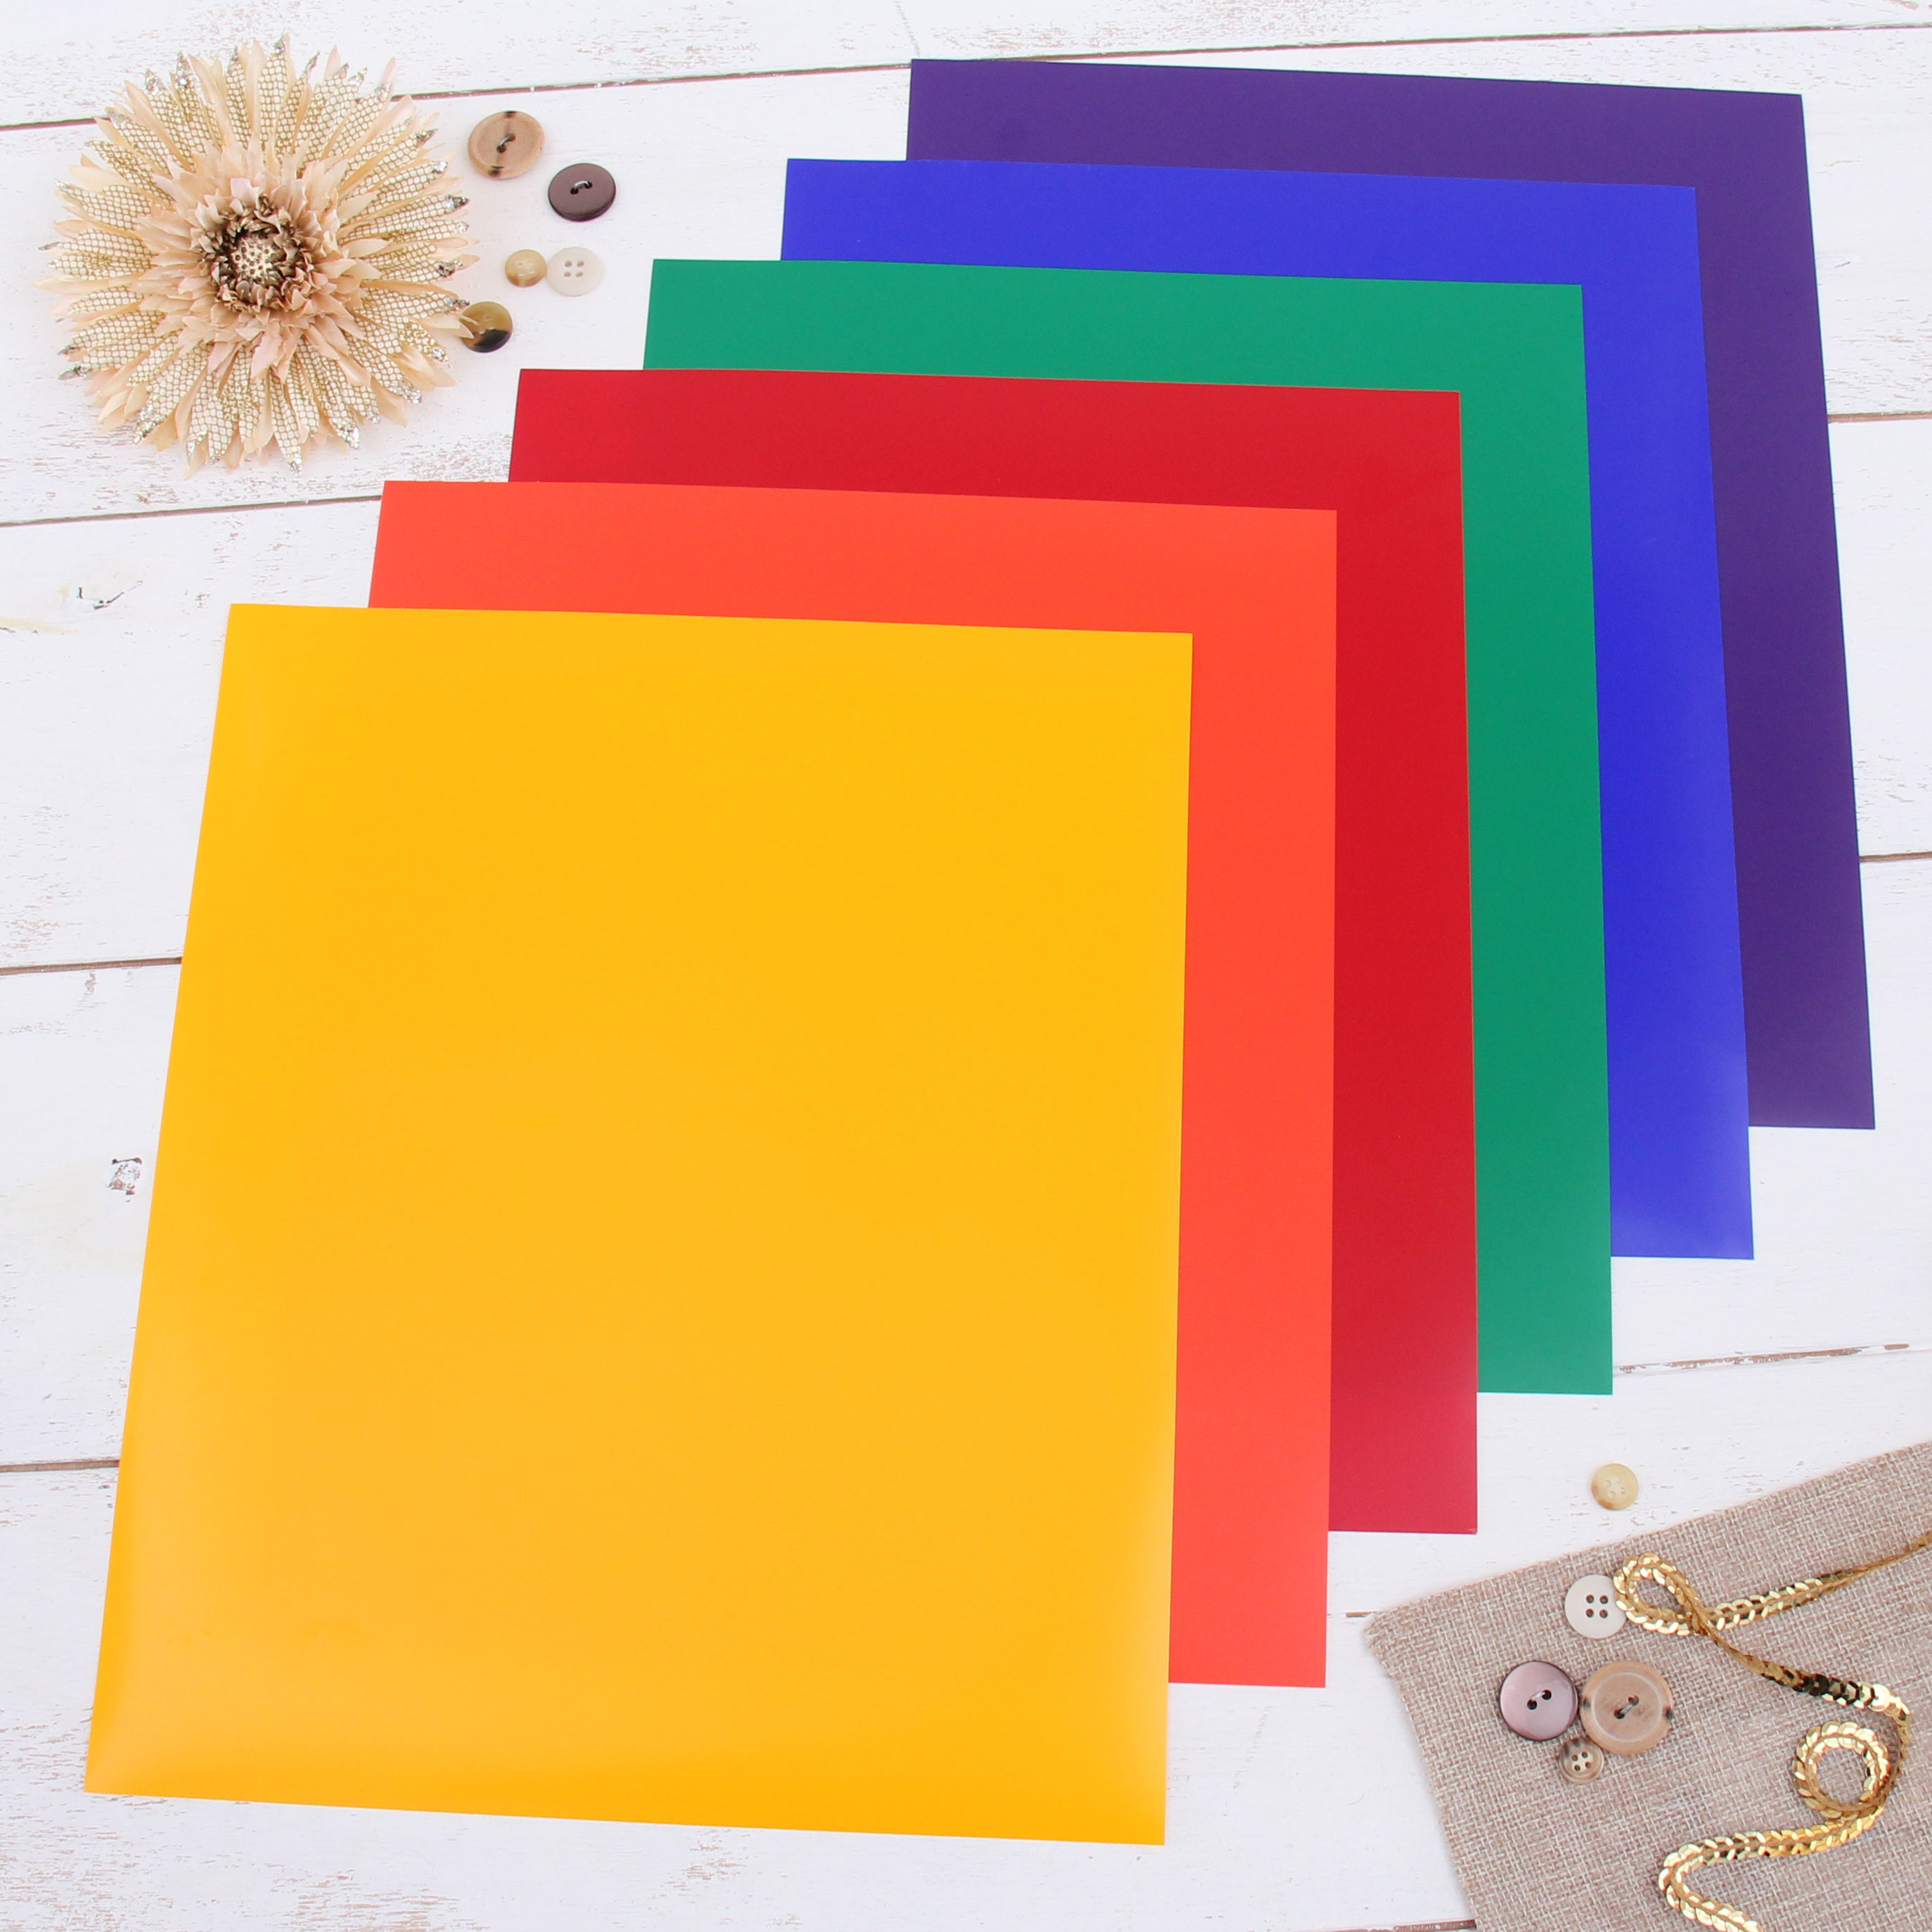 """Threadart Rainbow Colors 10"""" x 12"""" Heat Transfer Vinyl Precut Sheets   Bundle Pack Solid Colors   Includes Blue Orange Green Purple Red & Yellow Sheets   For Silhouette Cameo Cricut  HTV"""